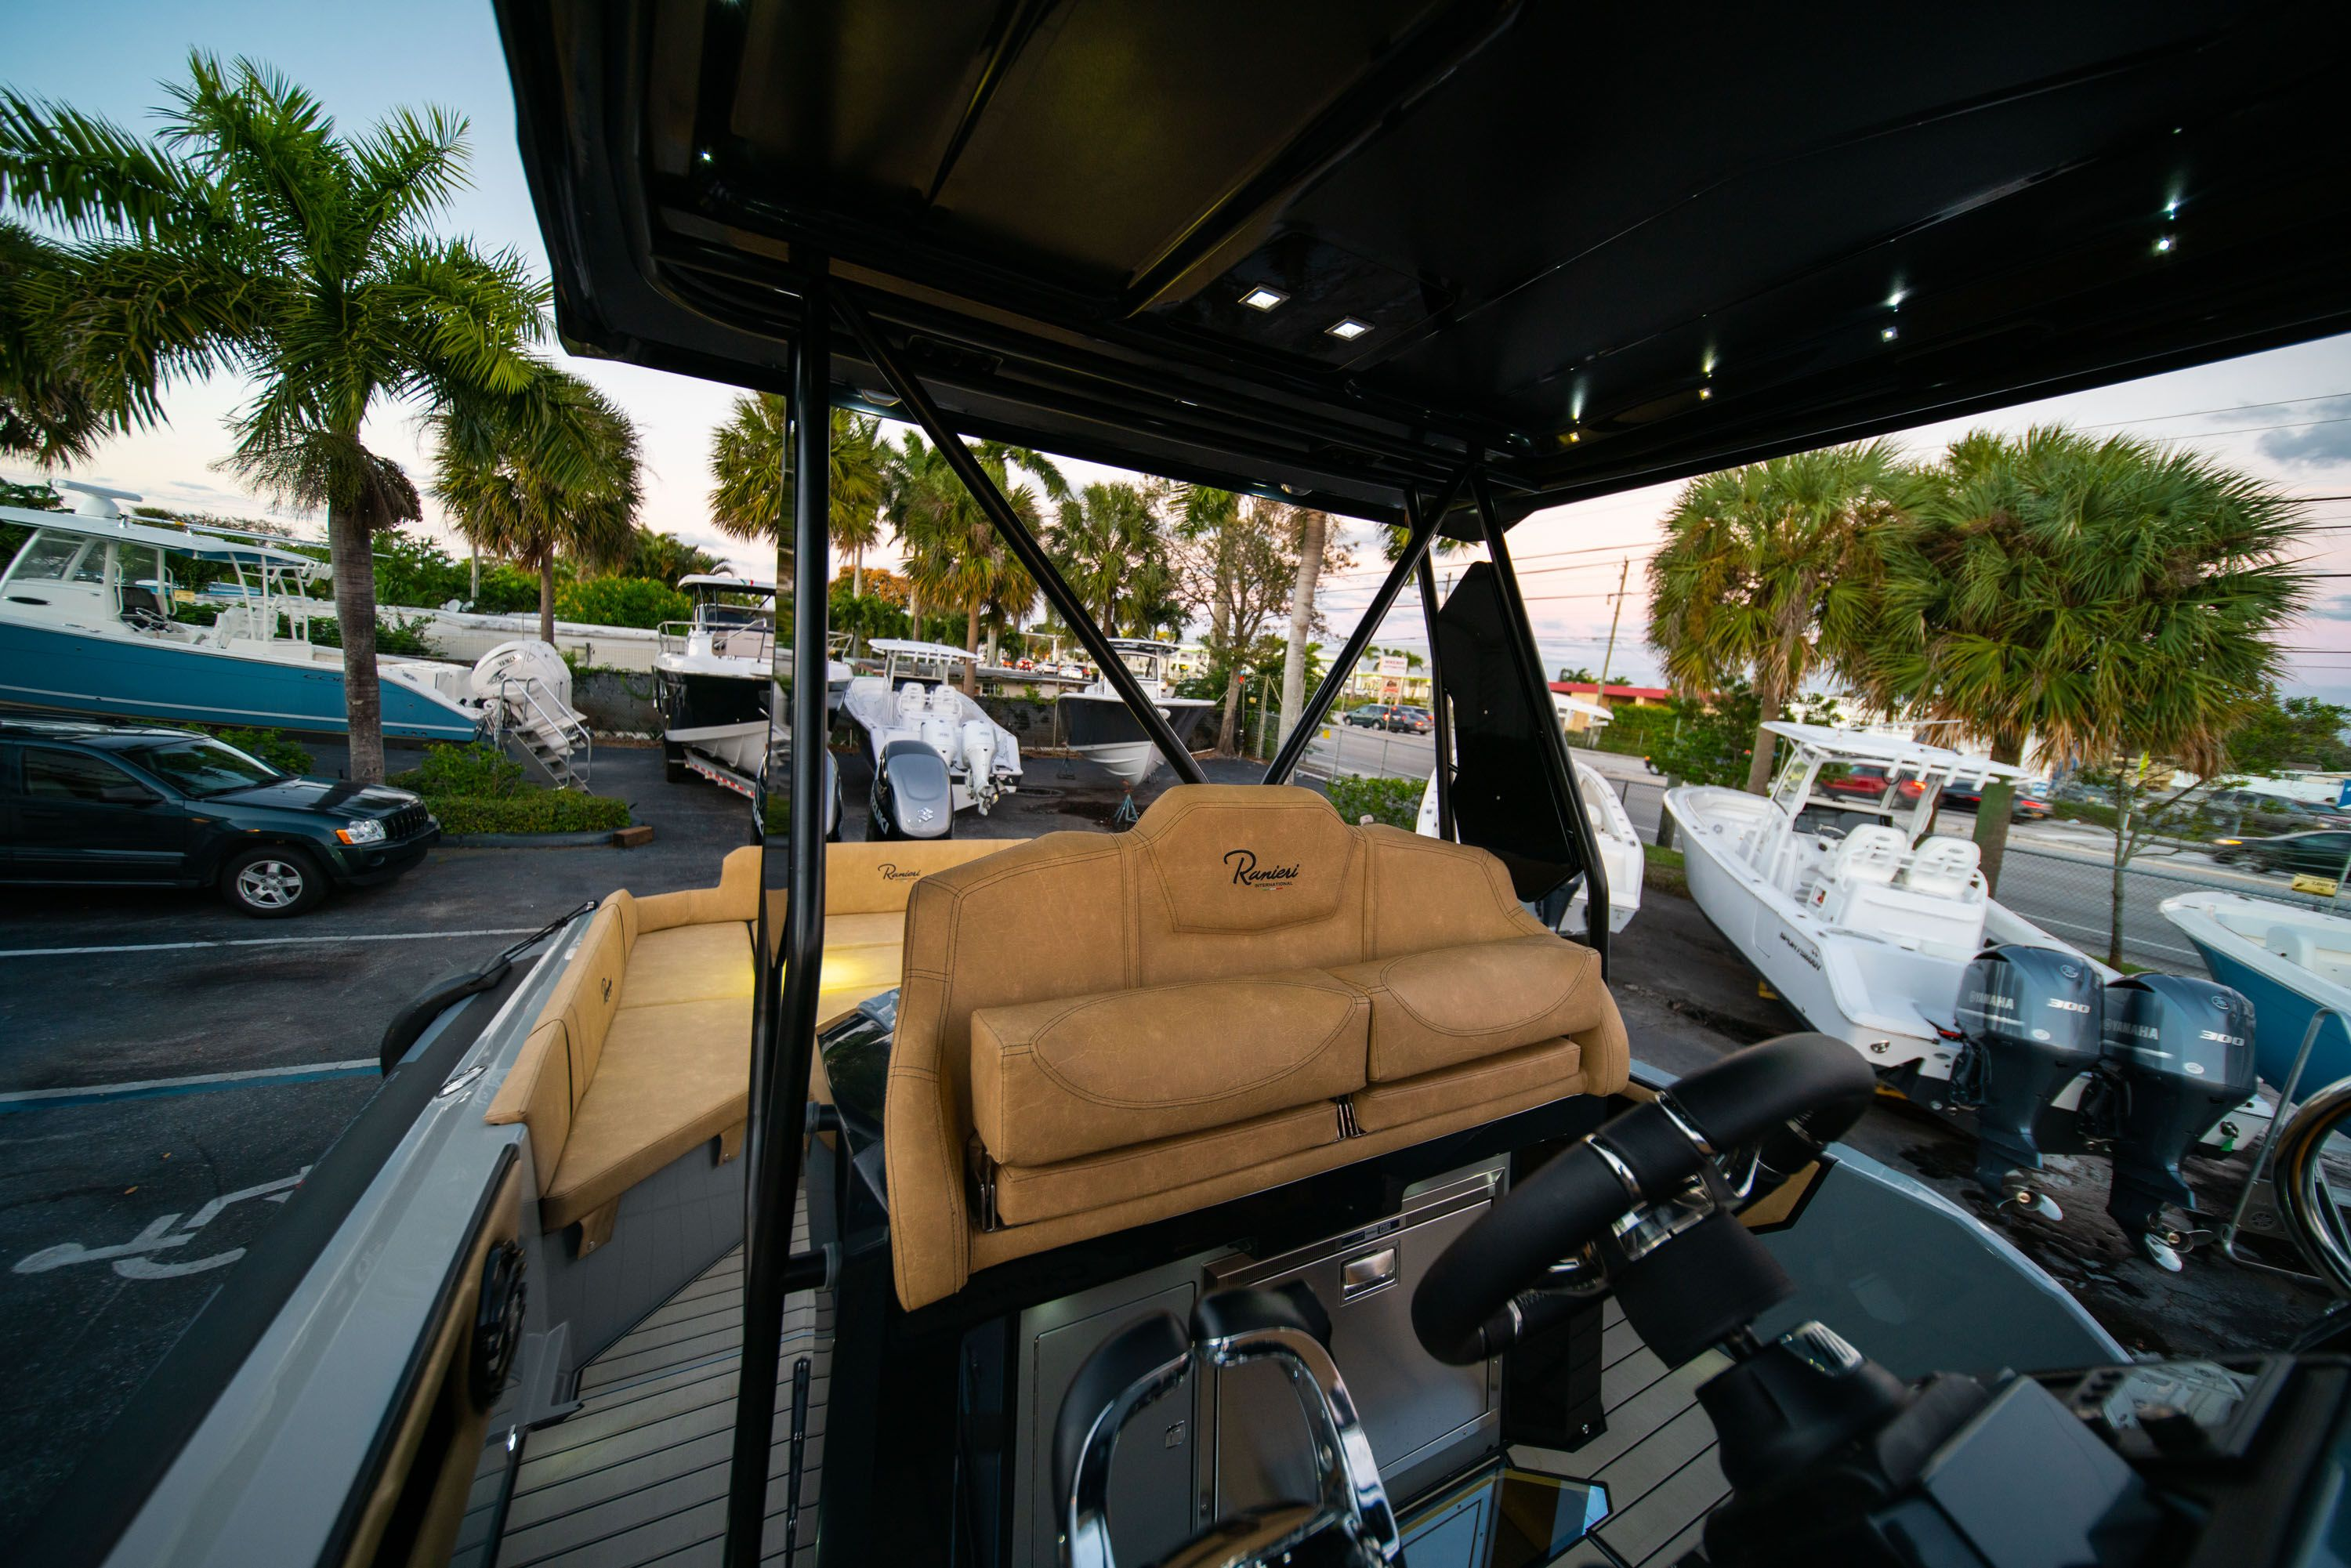 Thumbnail 32 for New 2019 Ranieri Cayman 38 Executive boat for sale in West Palm Beach, FL